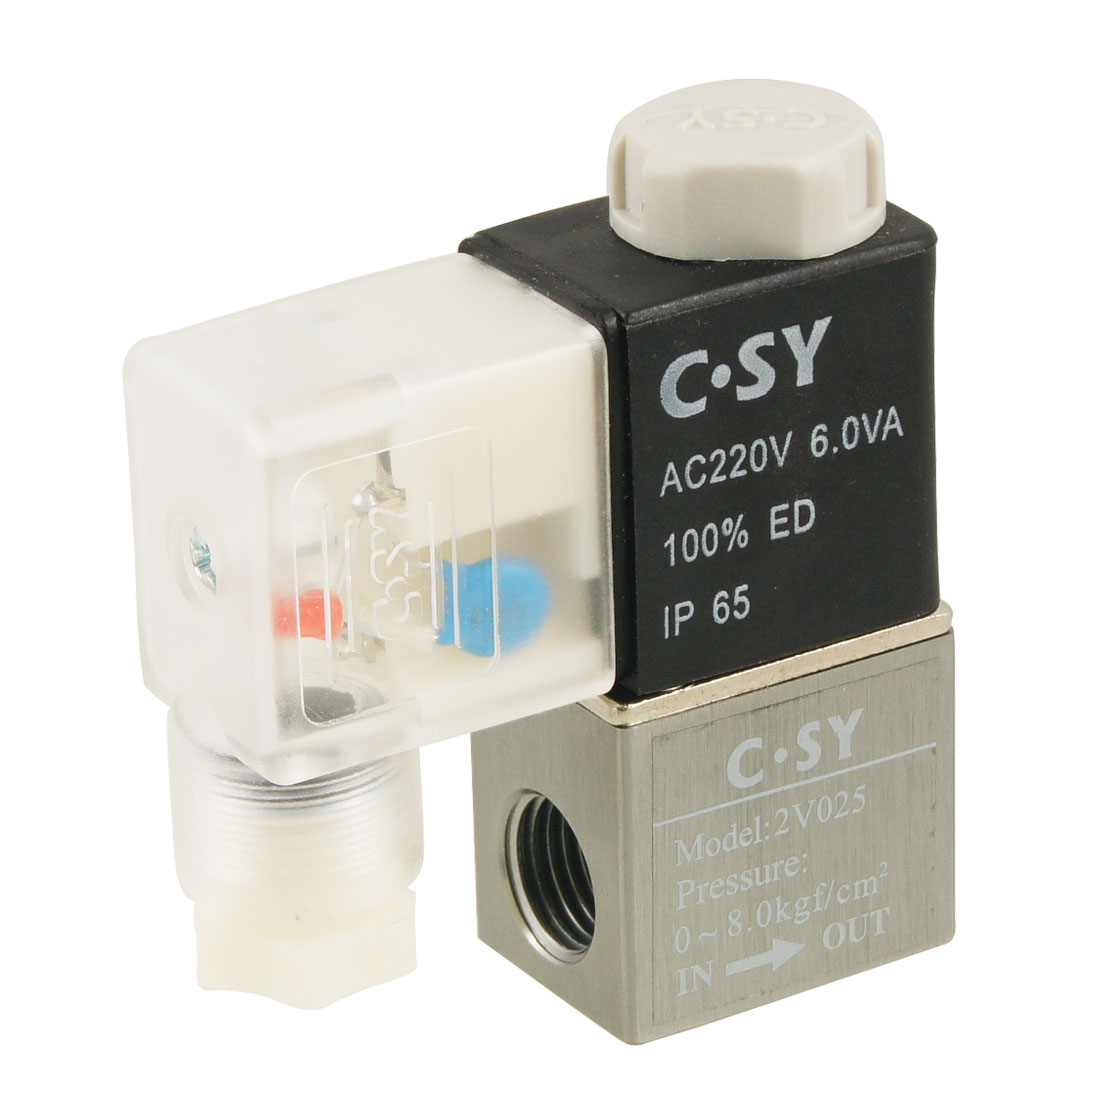 AC220V 2V025 Electromagnetic 2 Position 2 Way Solenoid Valve